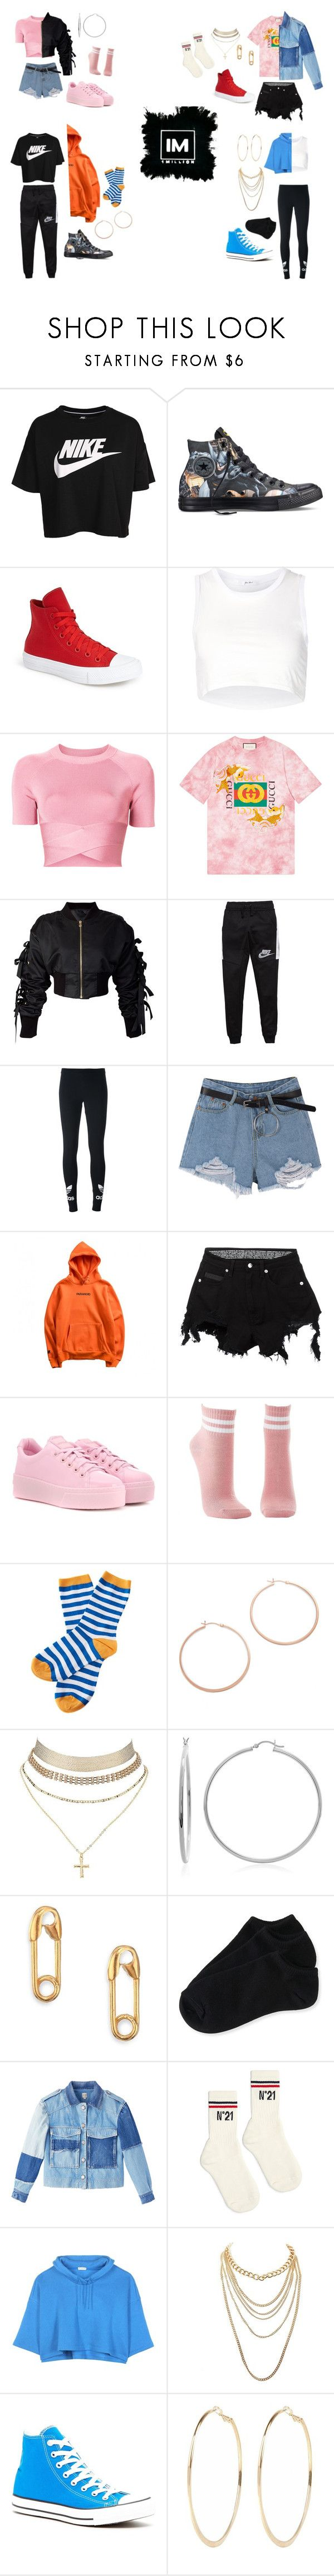 """1million studio perfect outfits"" by isabellaautiero on Polyvore featuring moda, NIKE, Converse, Julien David, T By Alexander Wang, Gucci, storets, adidas Originals, County Of Milan y Kenzo"